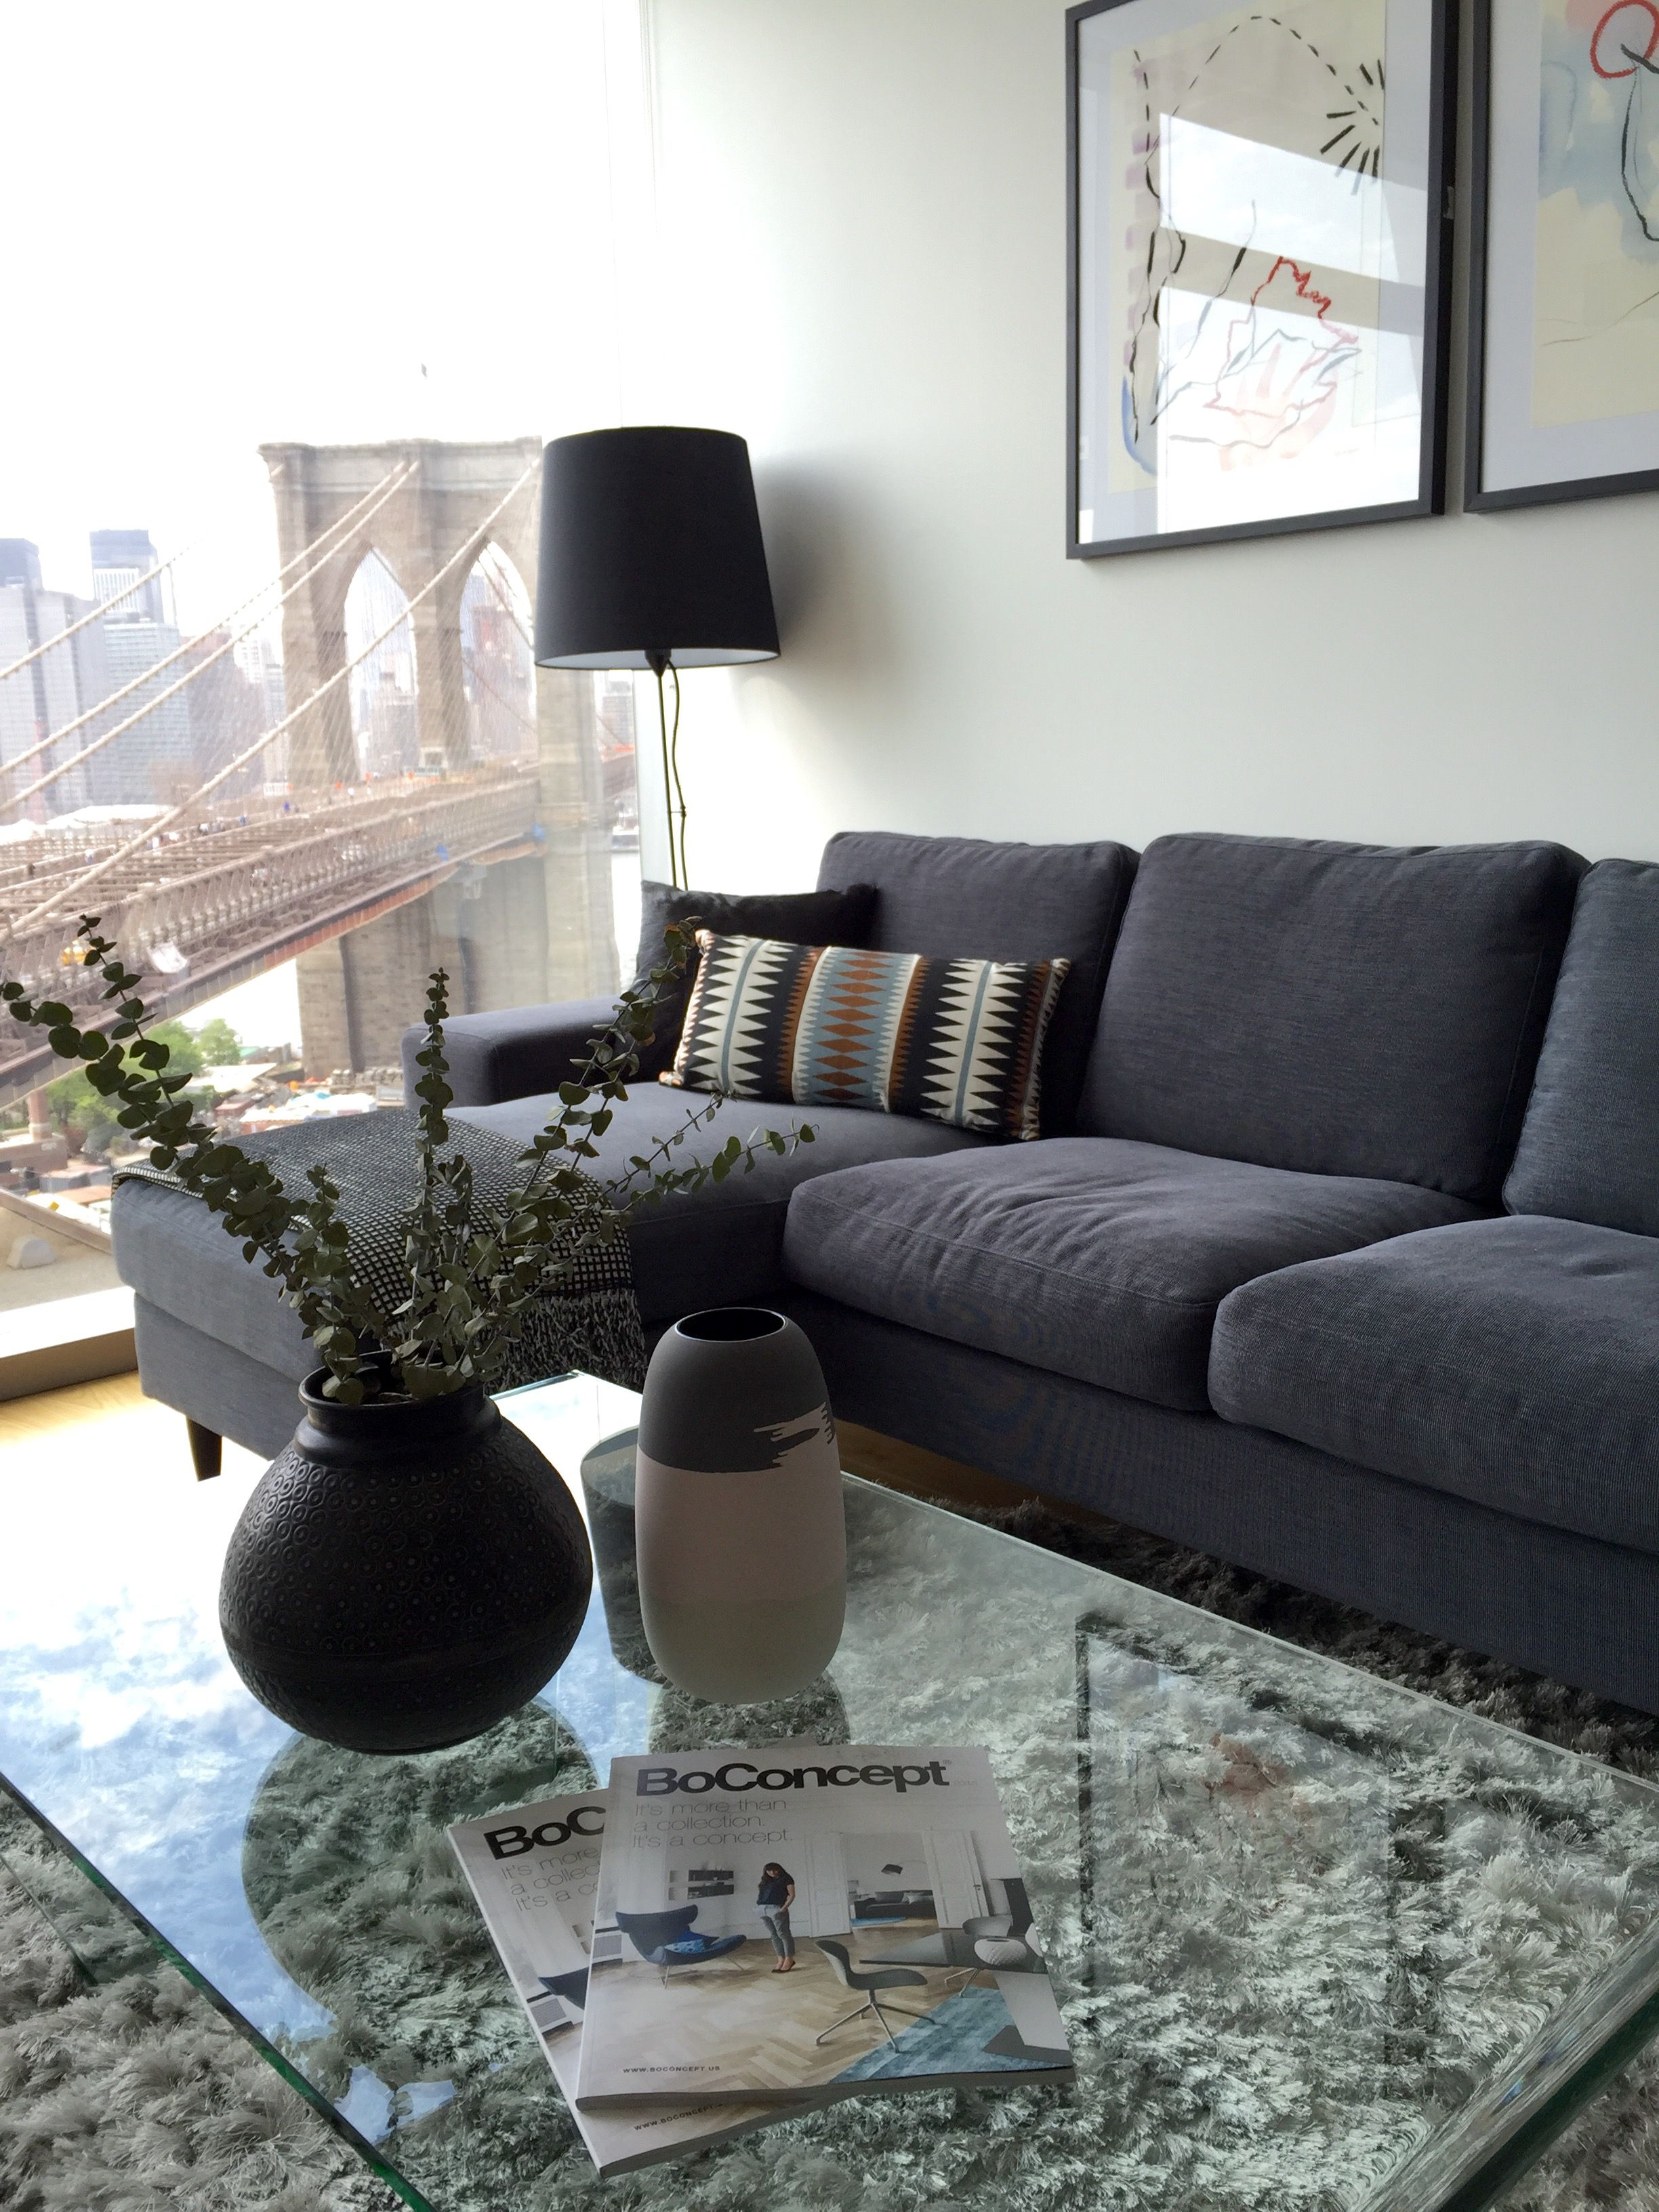 Brooklyn Apartment Fitted With BoConcept Furniture